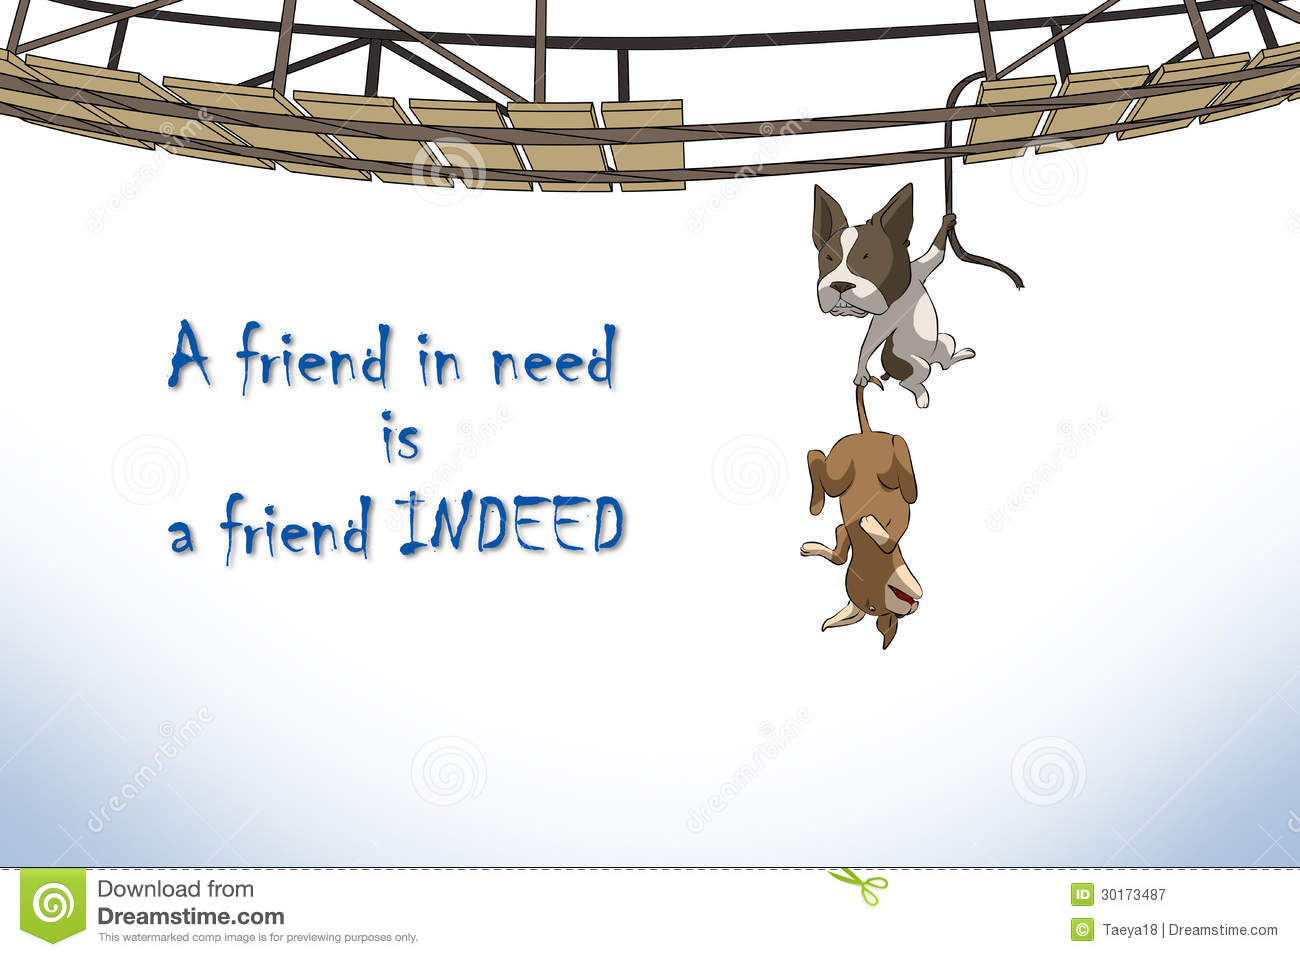 Resultado de imagen de a friend in need is a friend indeed español